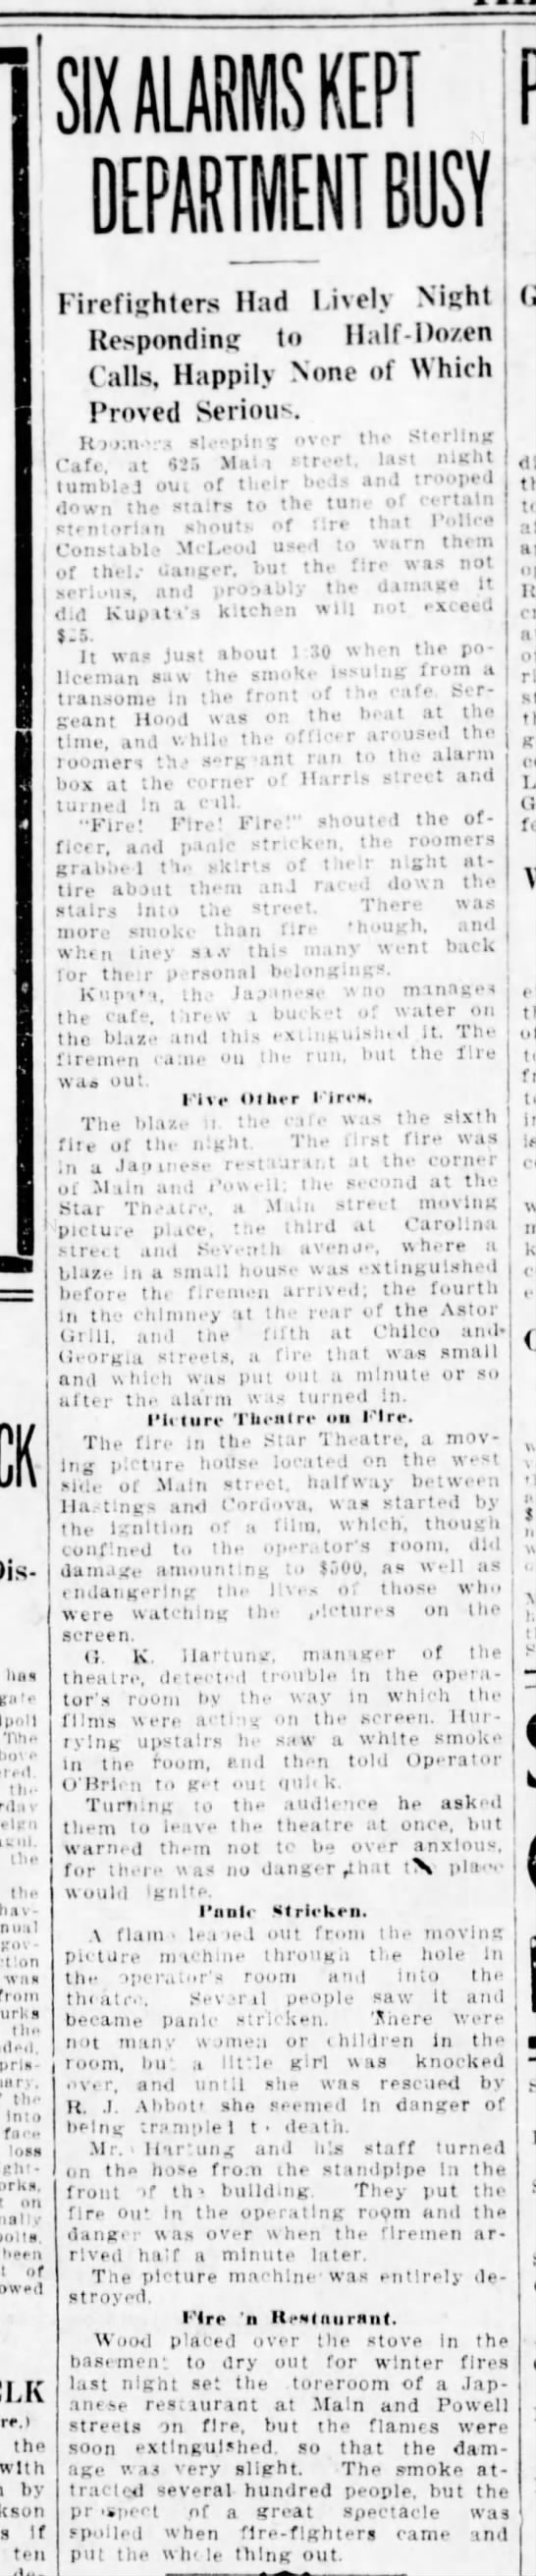 Fire at the Star 4Dec1912 - ha t p Ti.w 1i p On - in. the tin bavin mil cov...